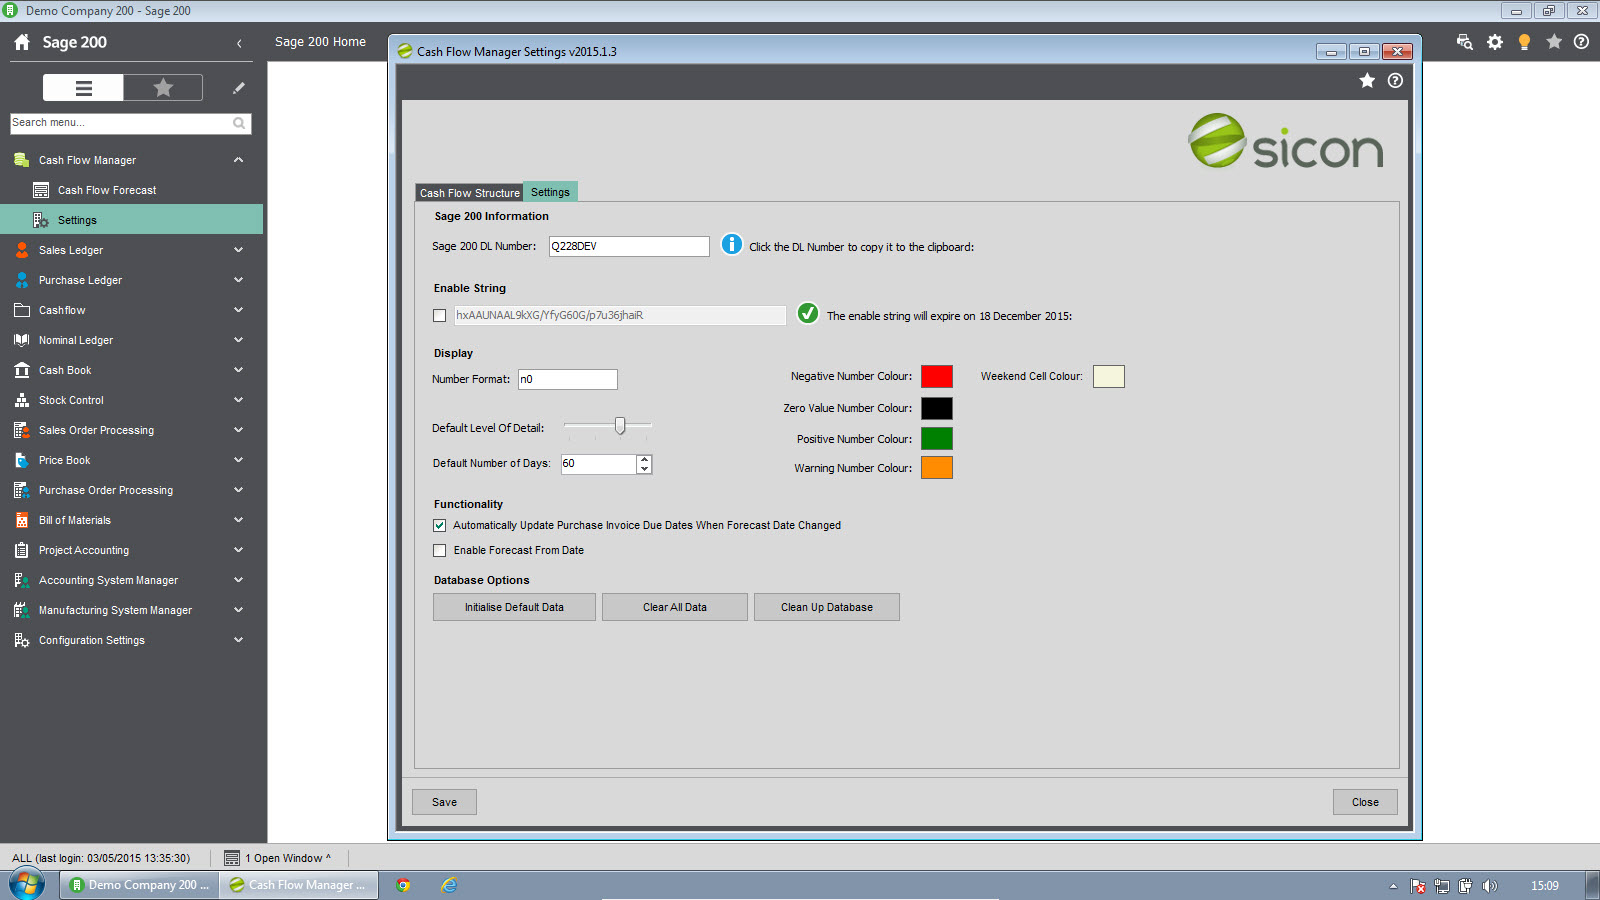 Sicon Cash Flow Manager - System Settings